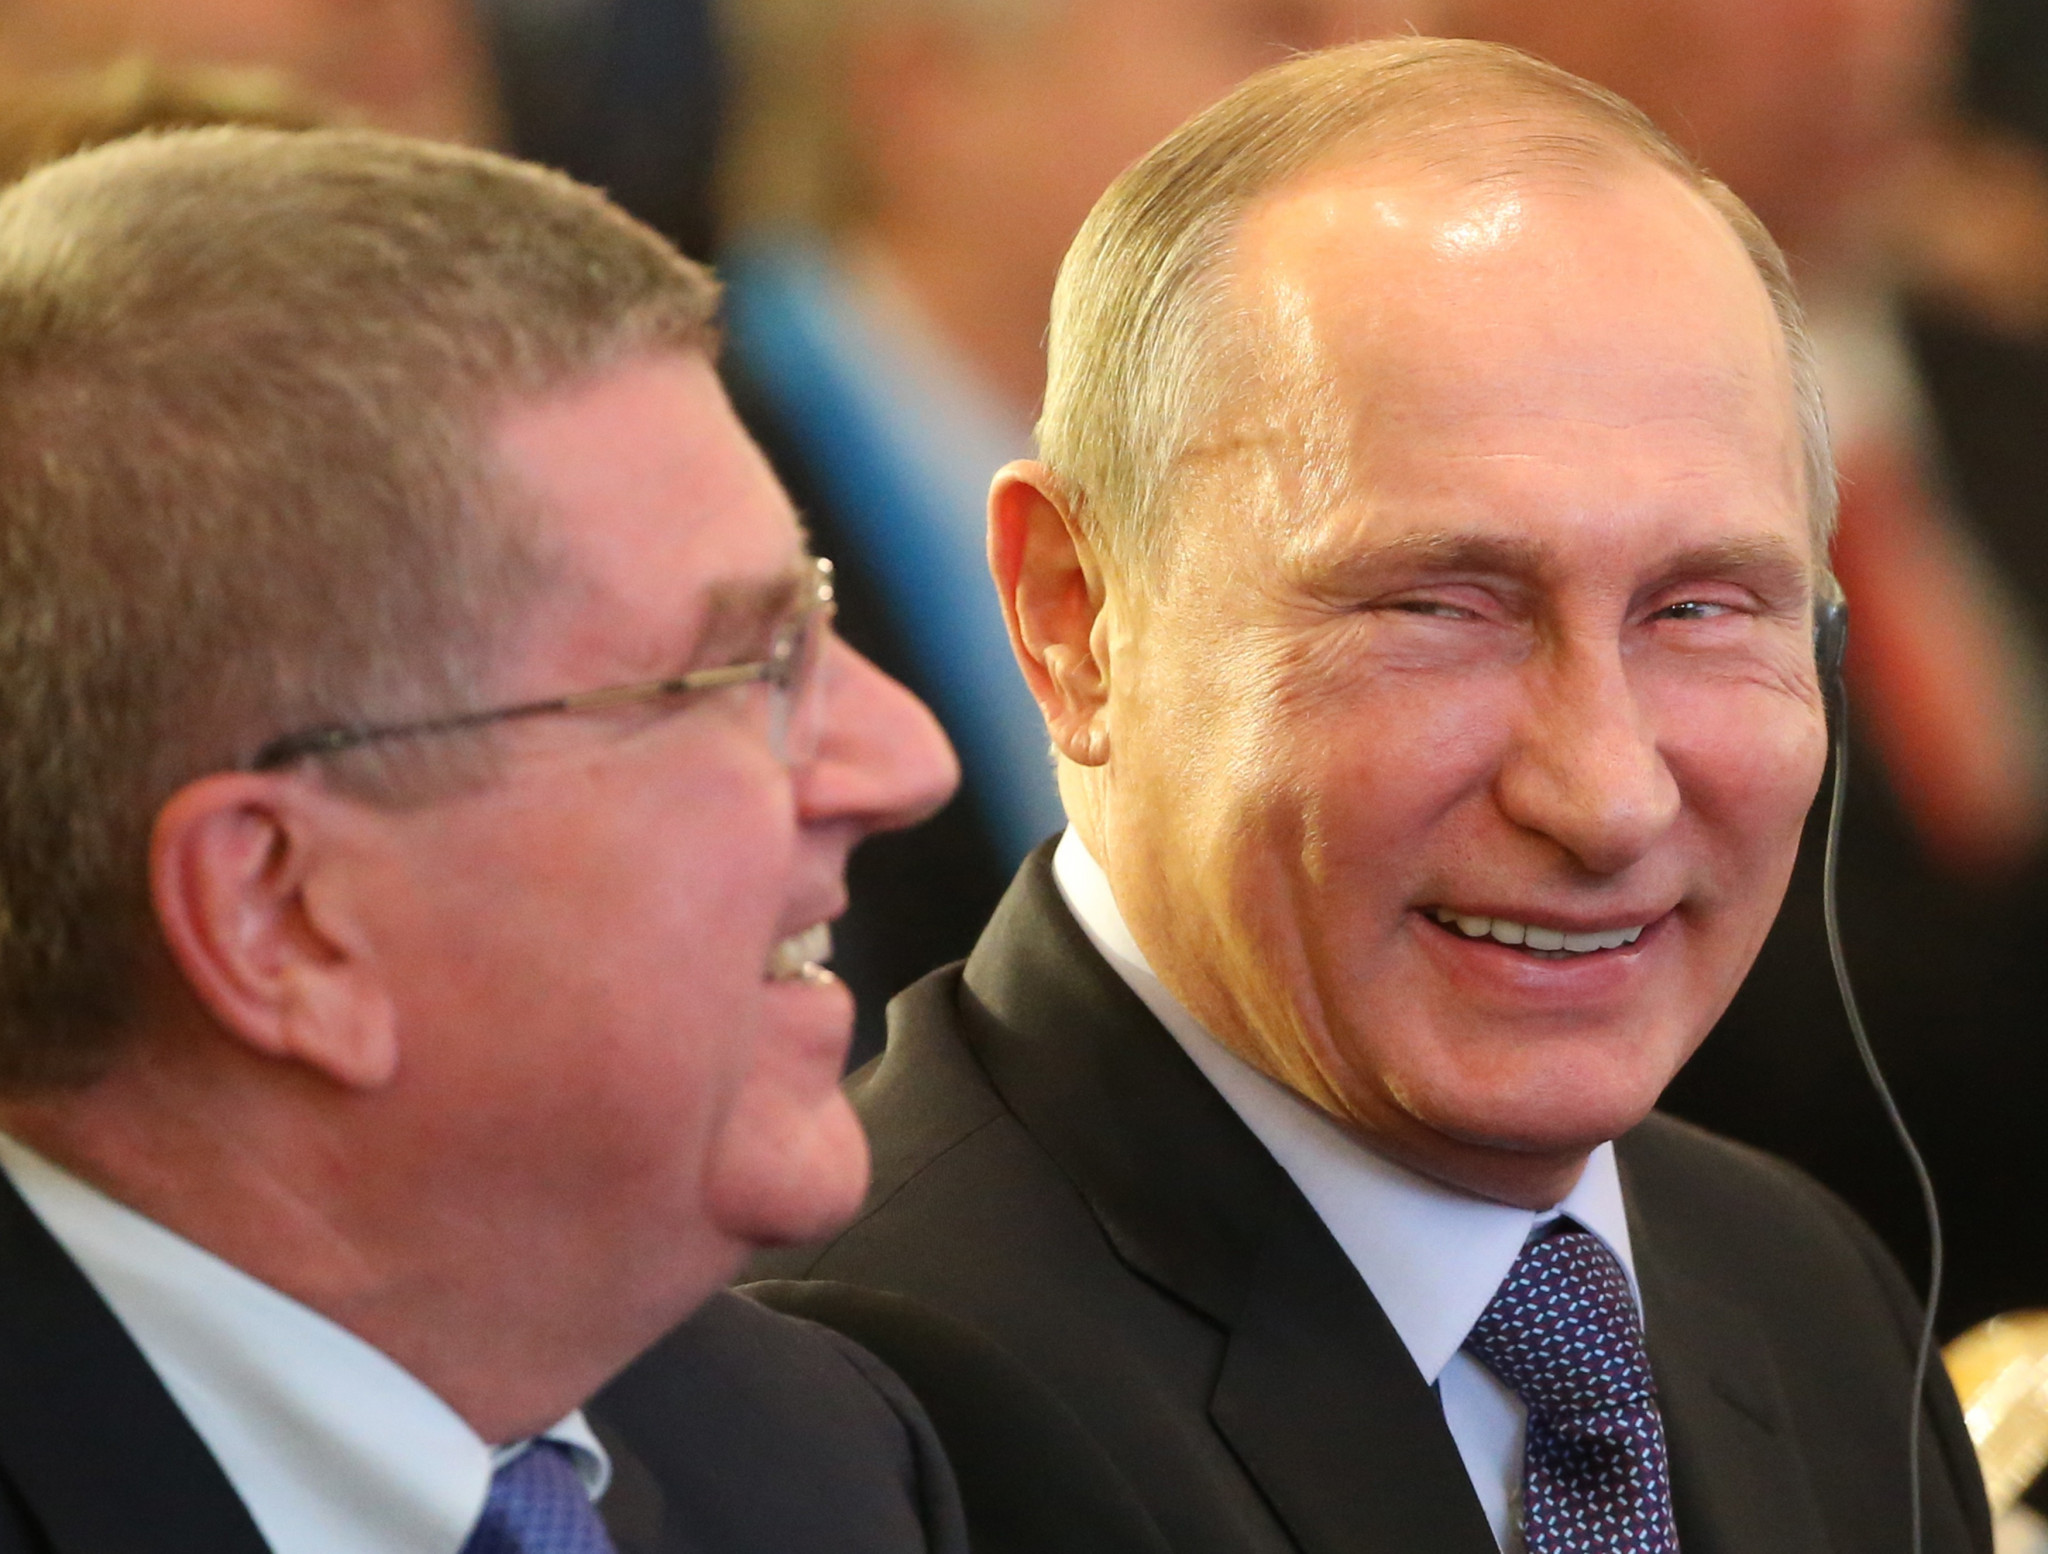 Russian President Vladimir Putin, right, alongside IOC counterpart Thomas Bach at the World Olympians Forum in 2015 ©Getty Images